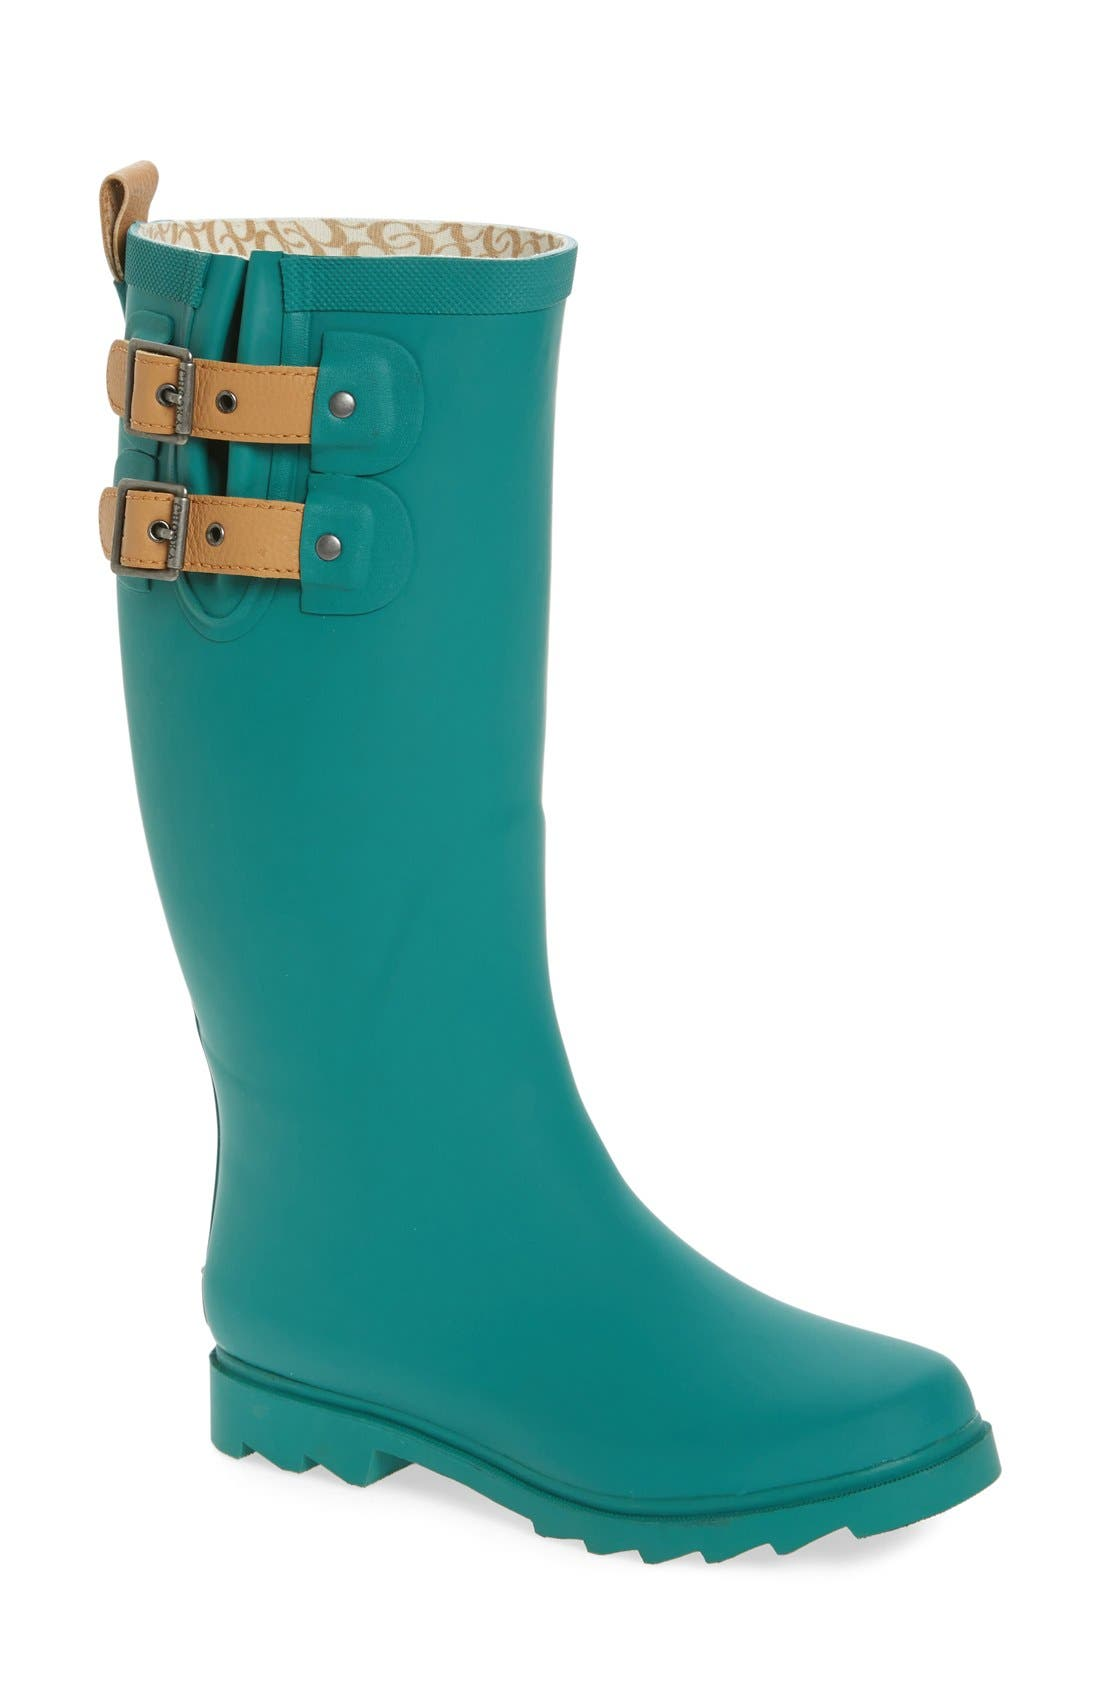 Alternate Image 1 Selected - Chooka 'Top Solid' Rain Boot (Women)